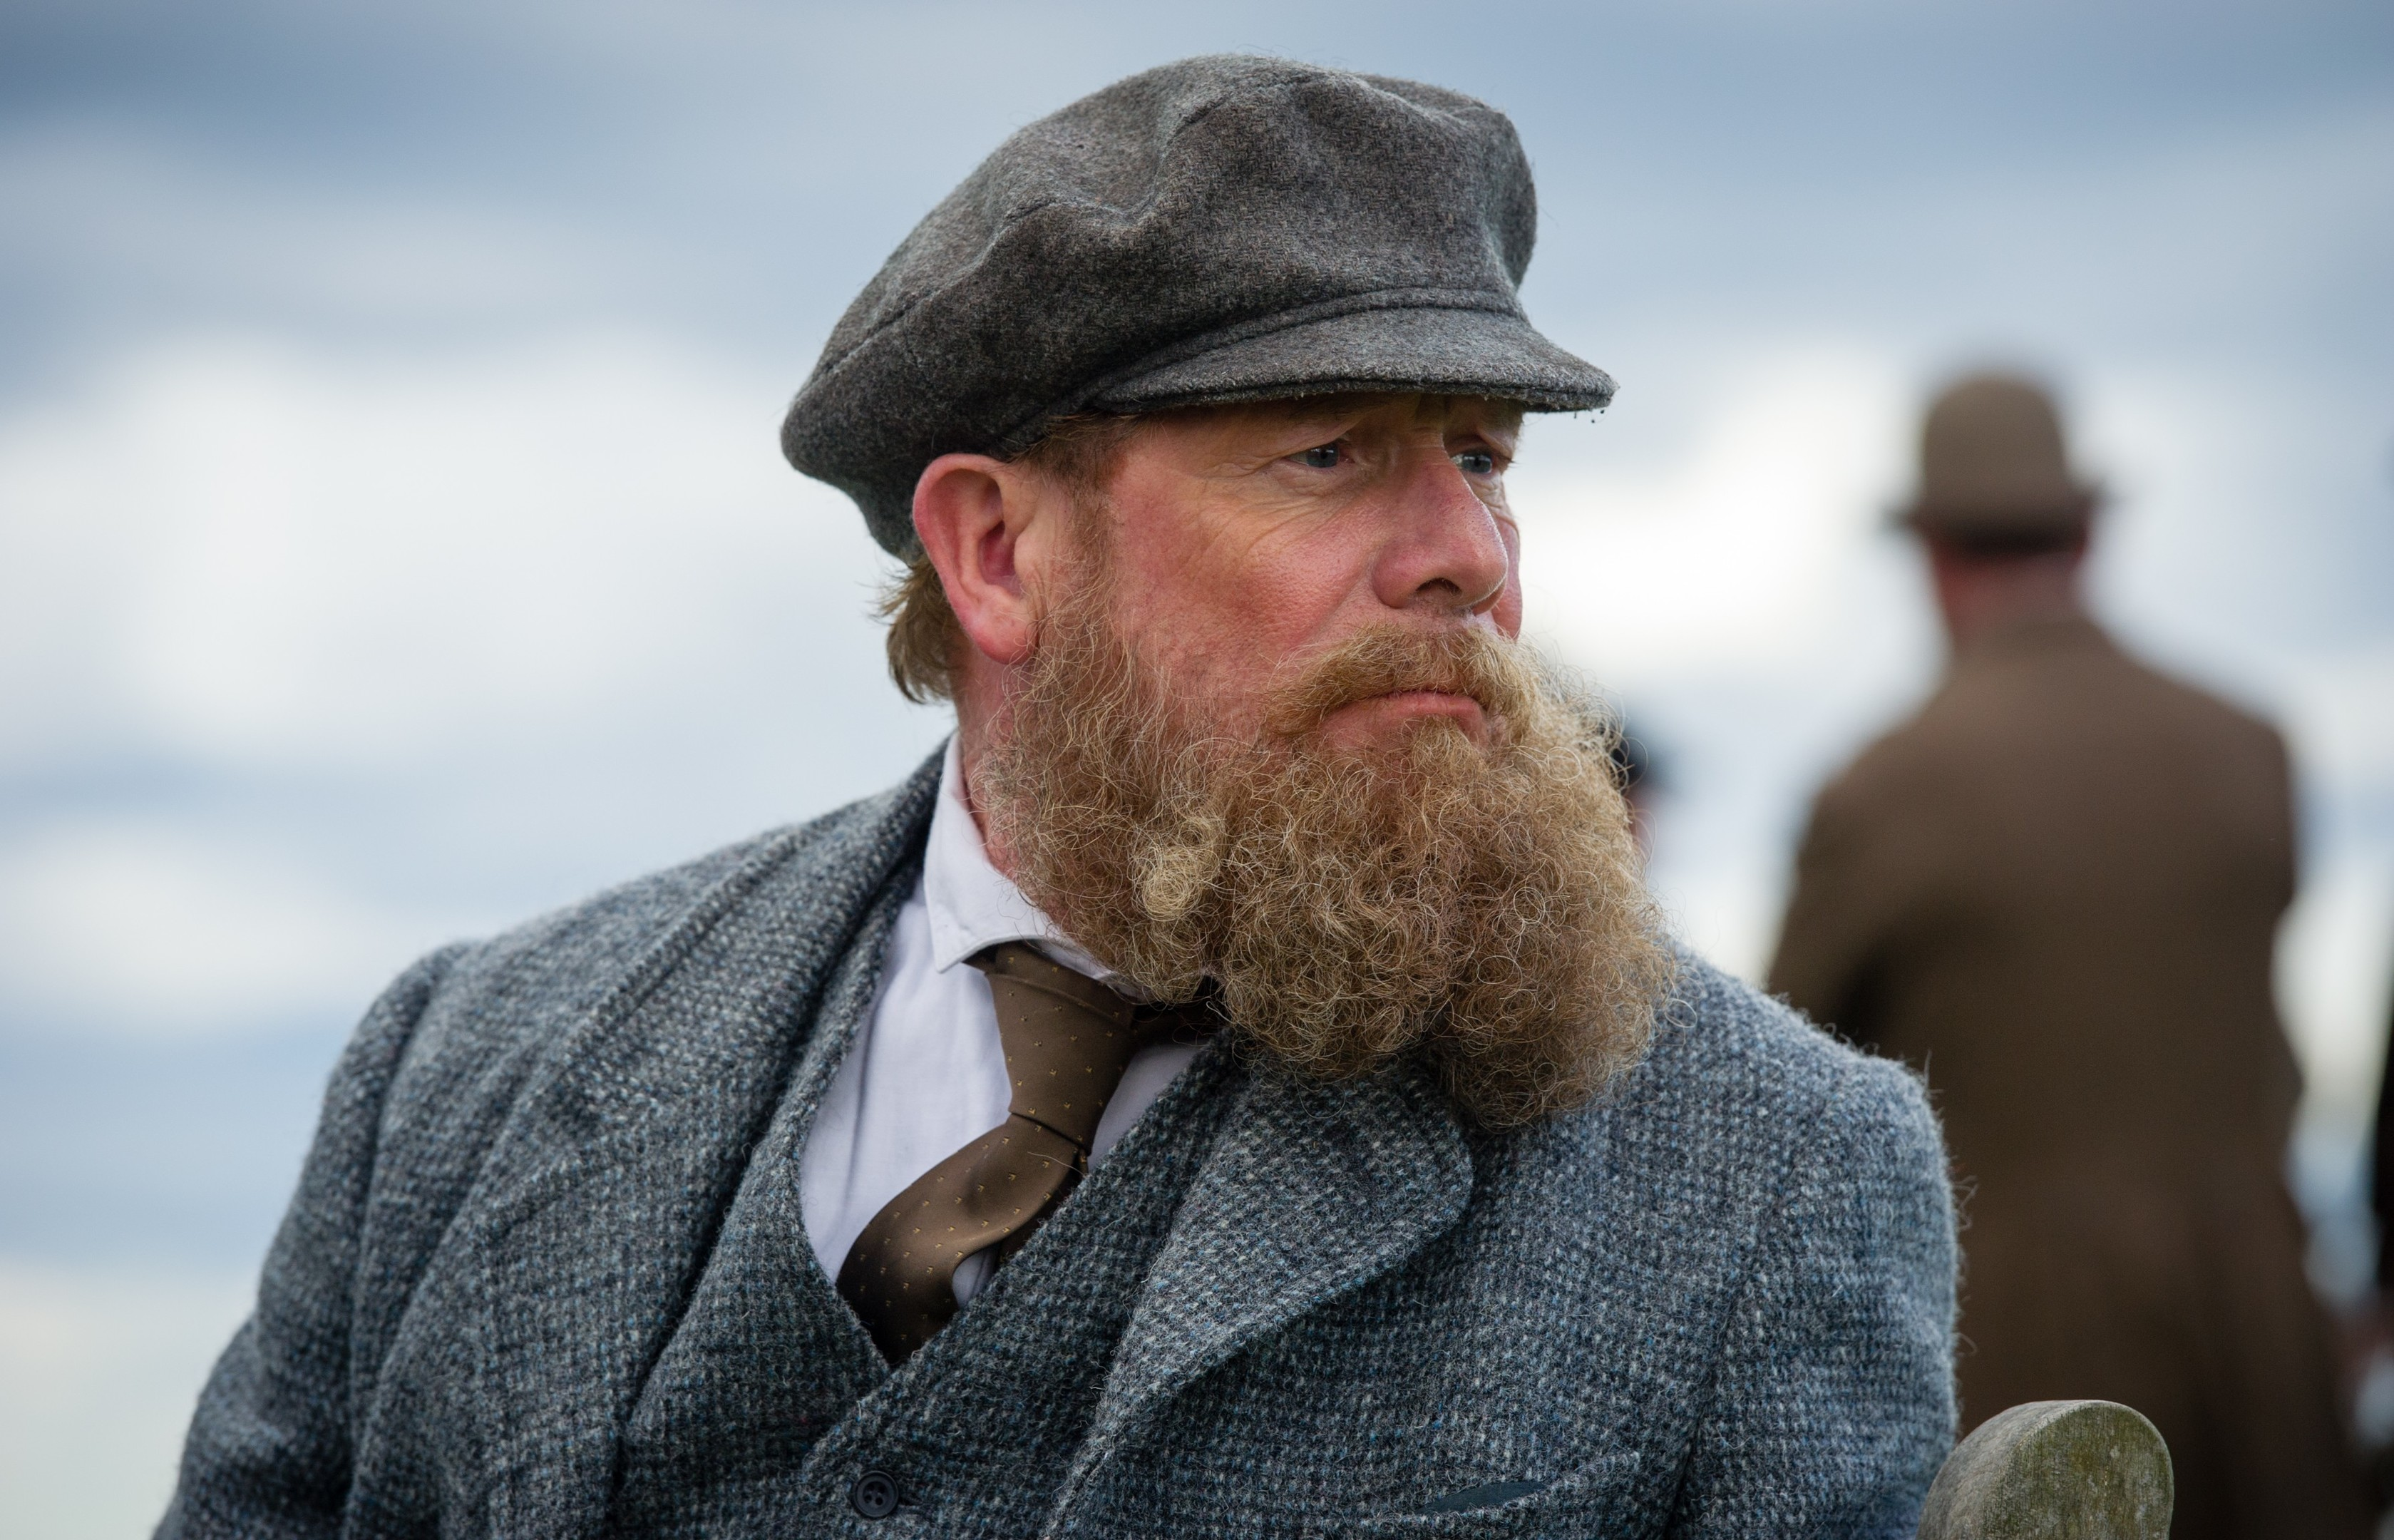 Peter Mullan as Old Tom Morris in Tommy's Honour